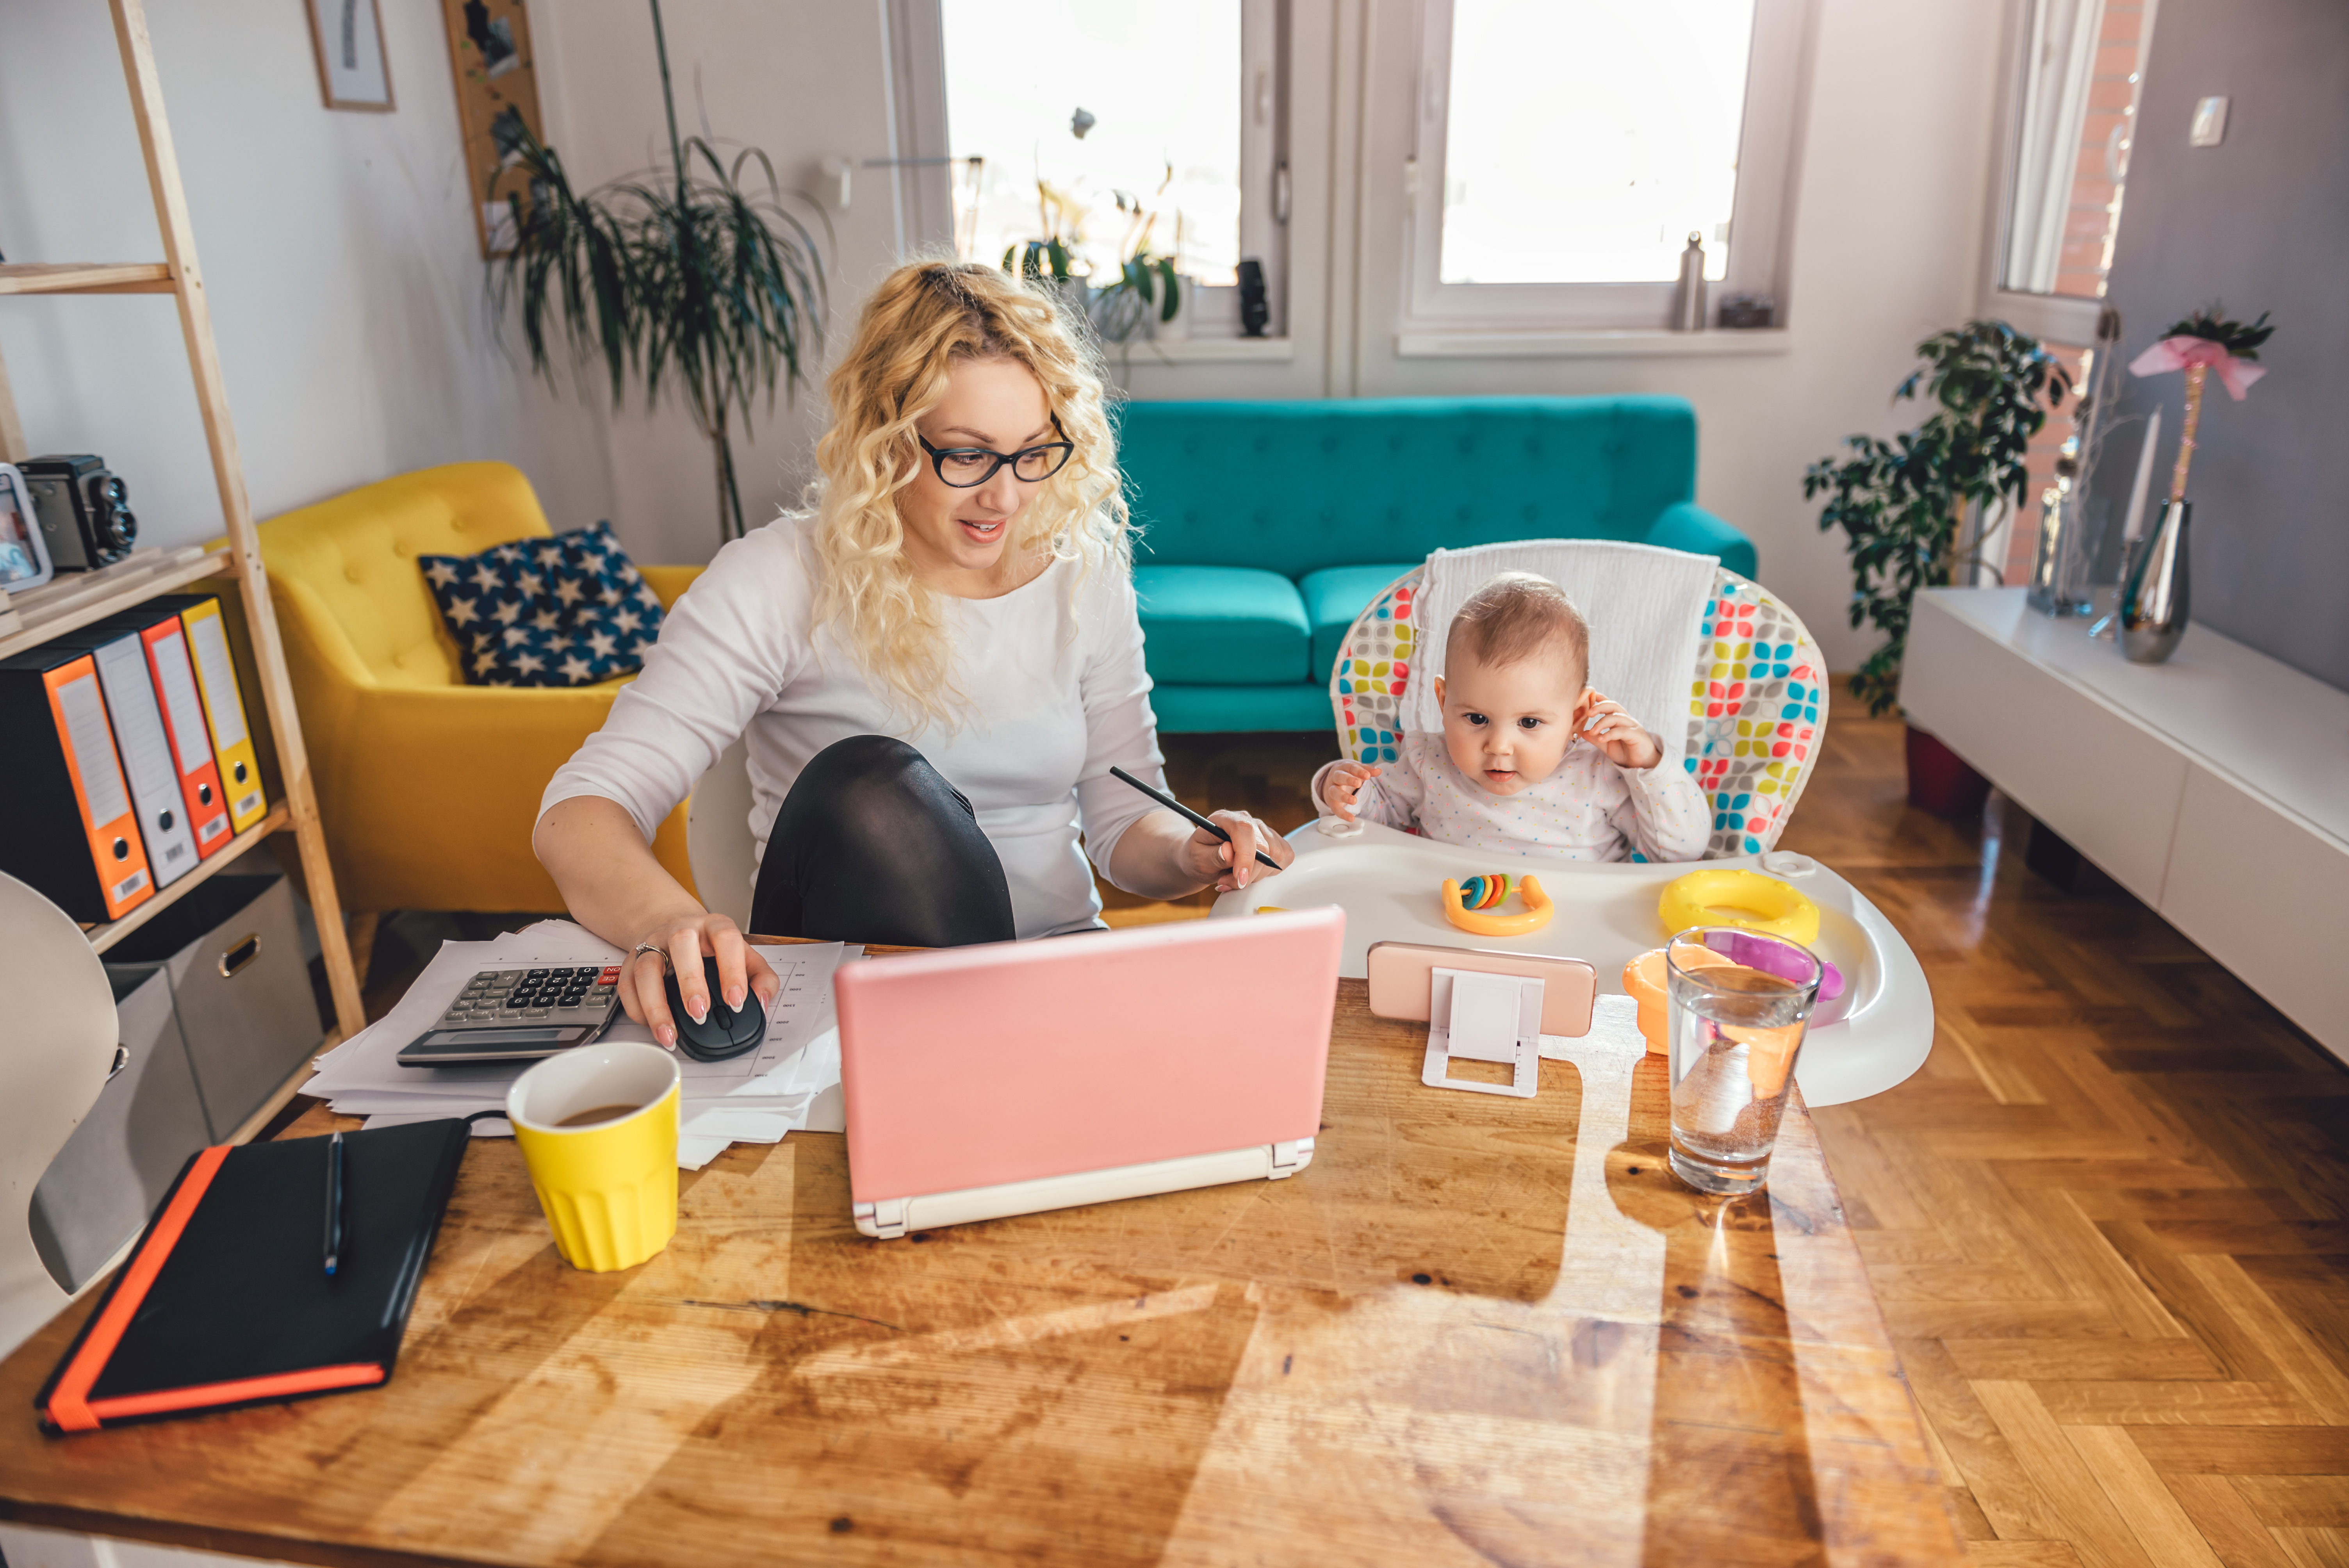 Remote work: 11 tips for staying productive and positive when working from home